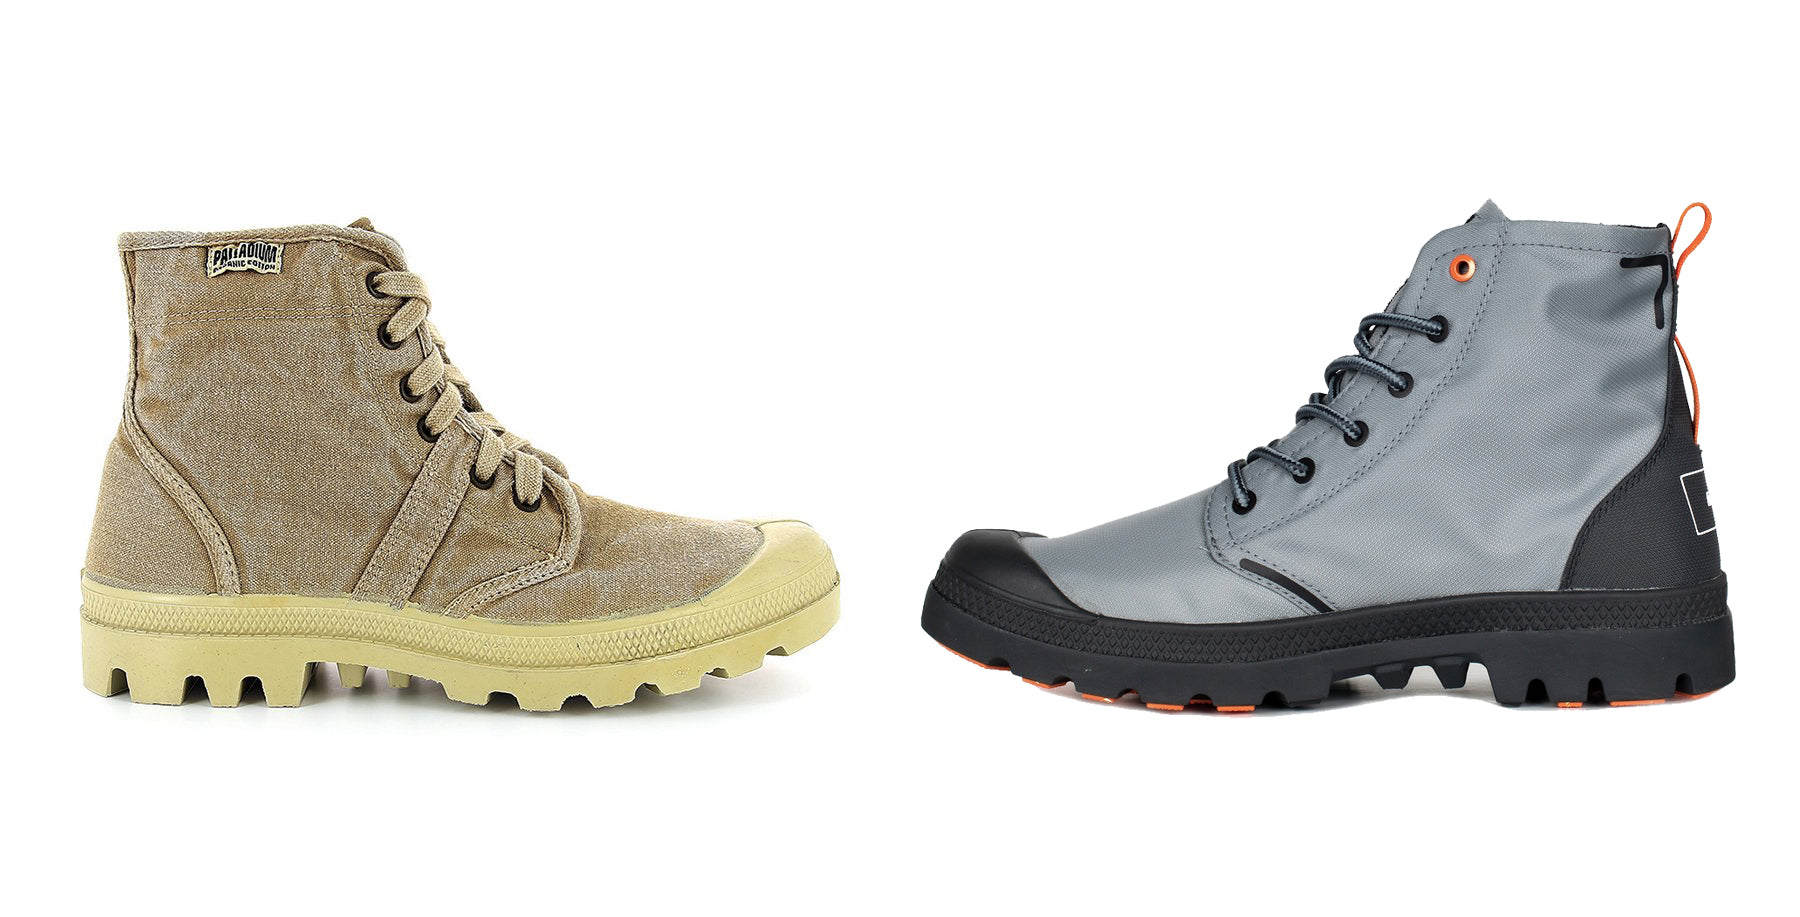 Palladiums first organic cotton boot, and the latest sustainable version in collaboration with Finisterre